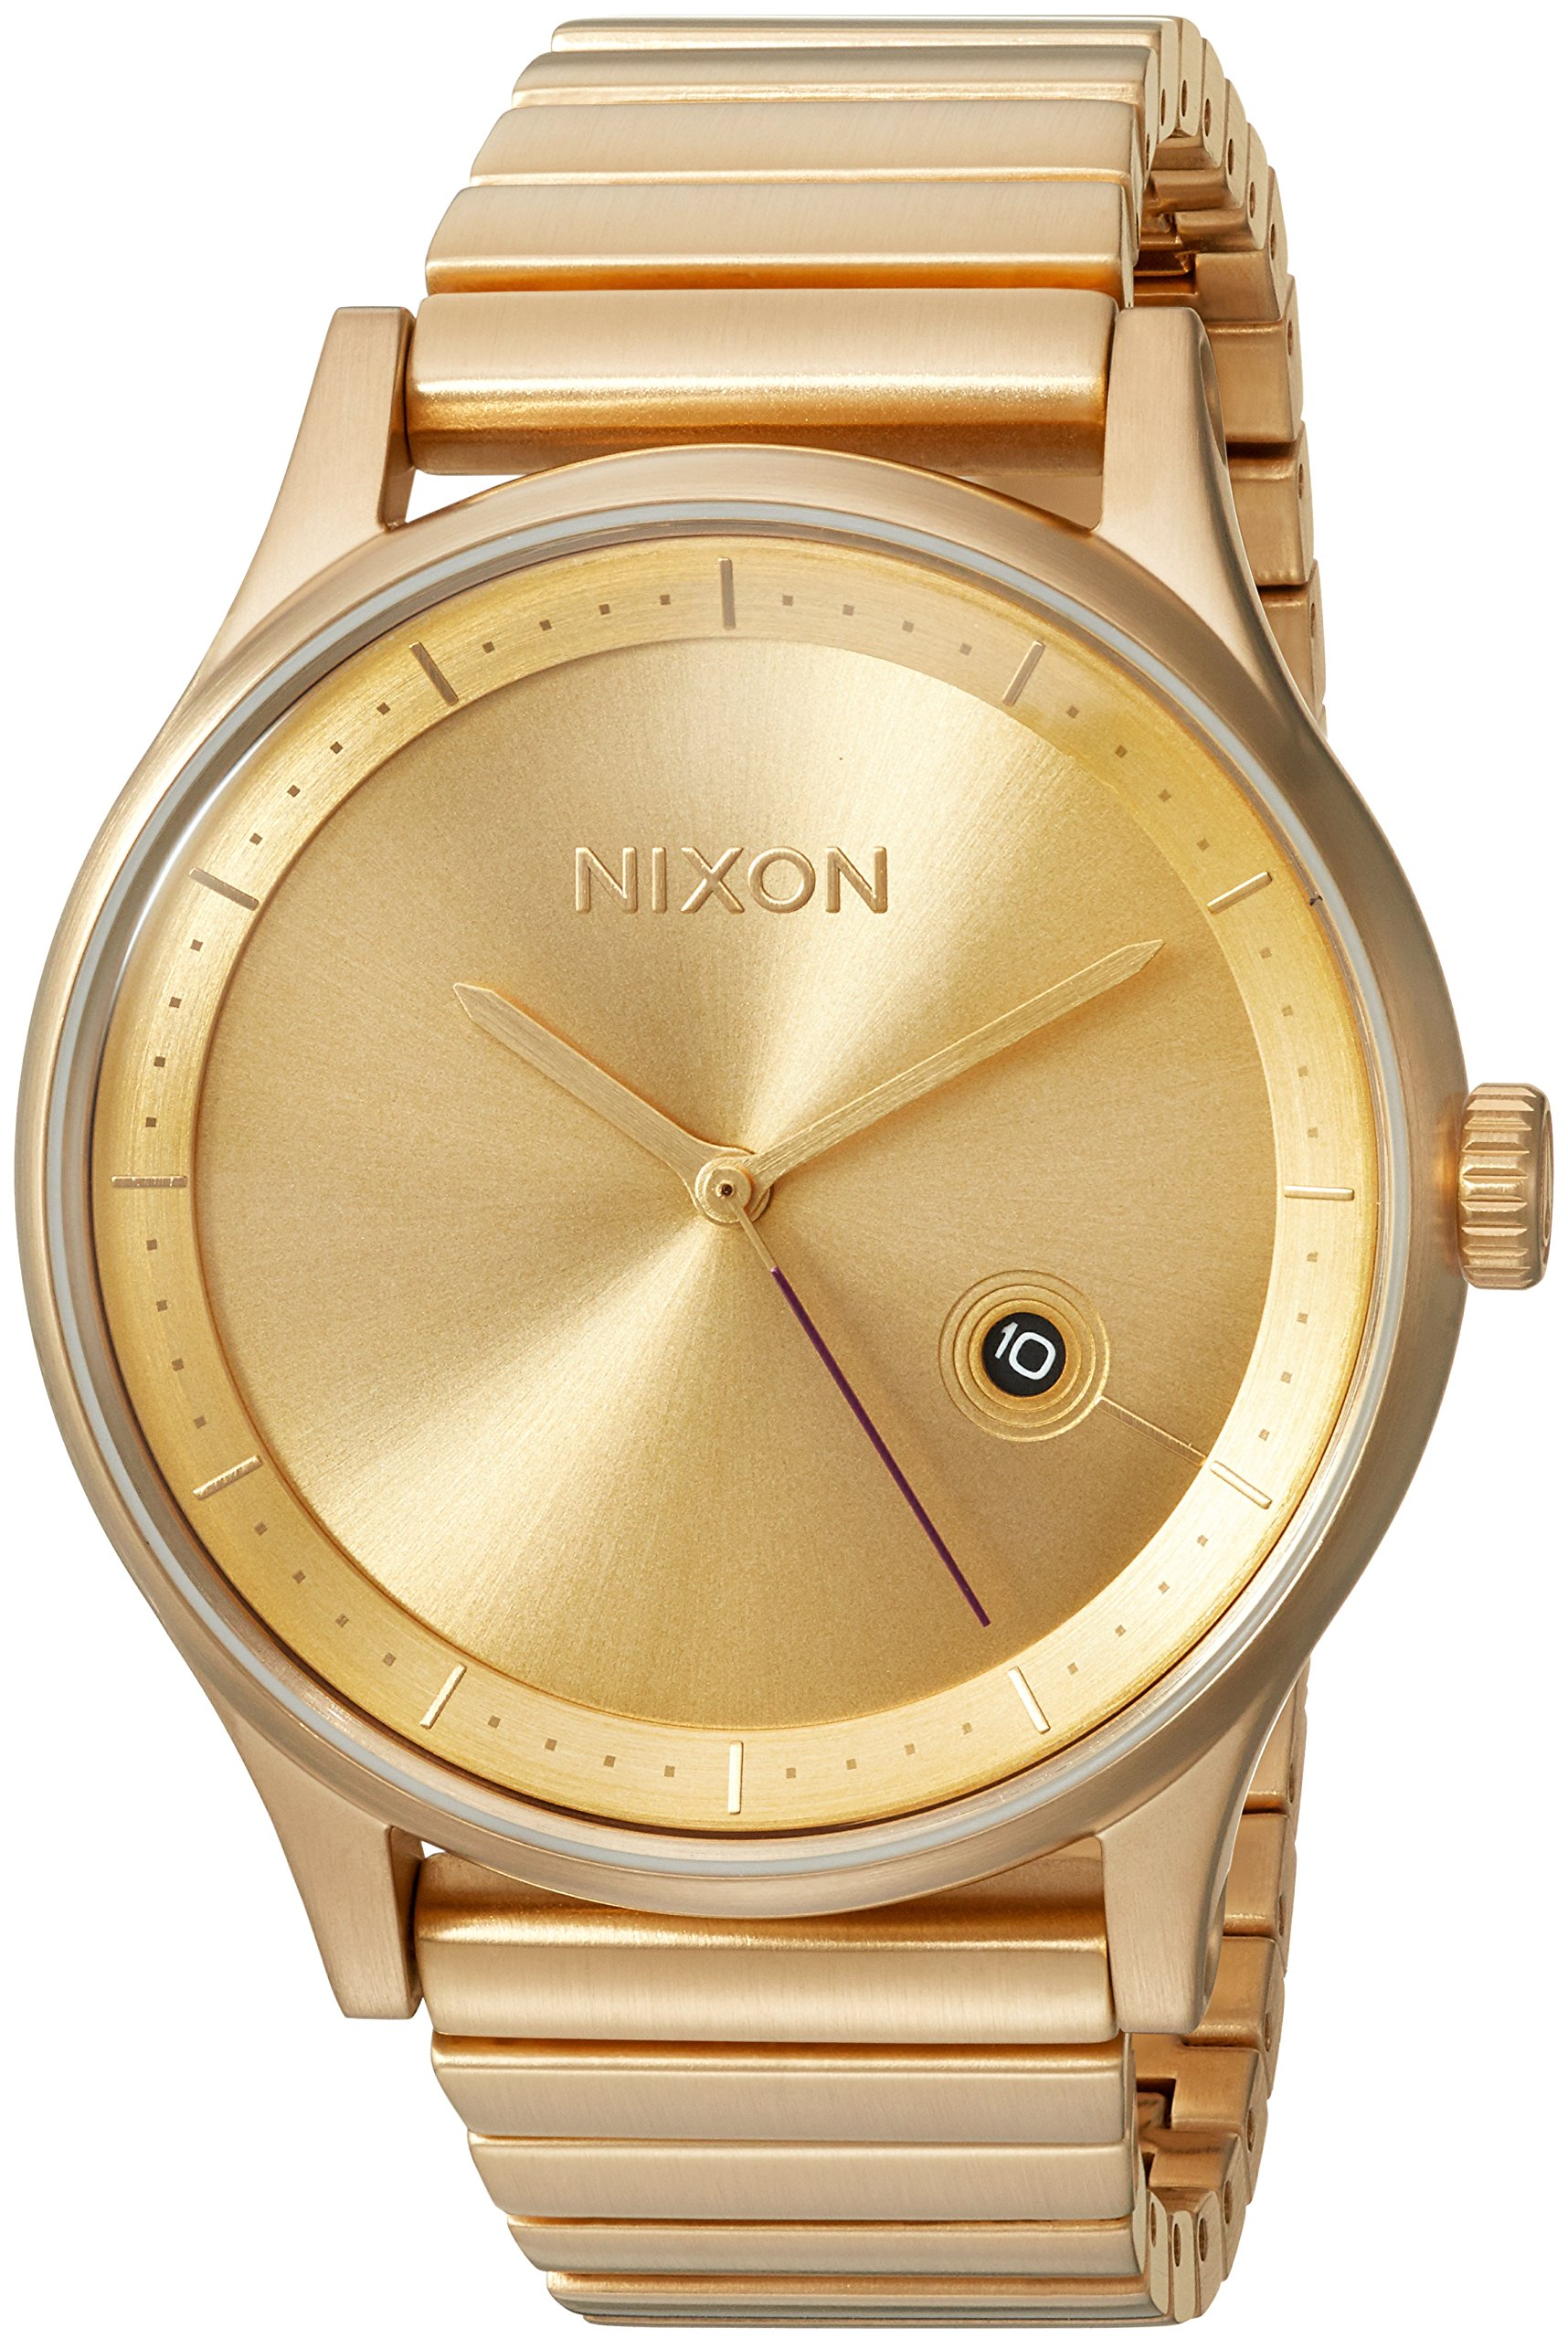 Nixon Men's Station Japanese-Quartz Watch with Stainless-Steel Strap, Gold, 20 (Model: A1160502-00)